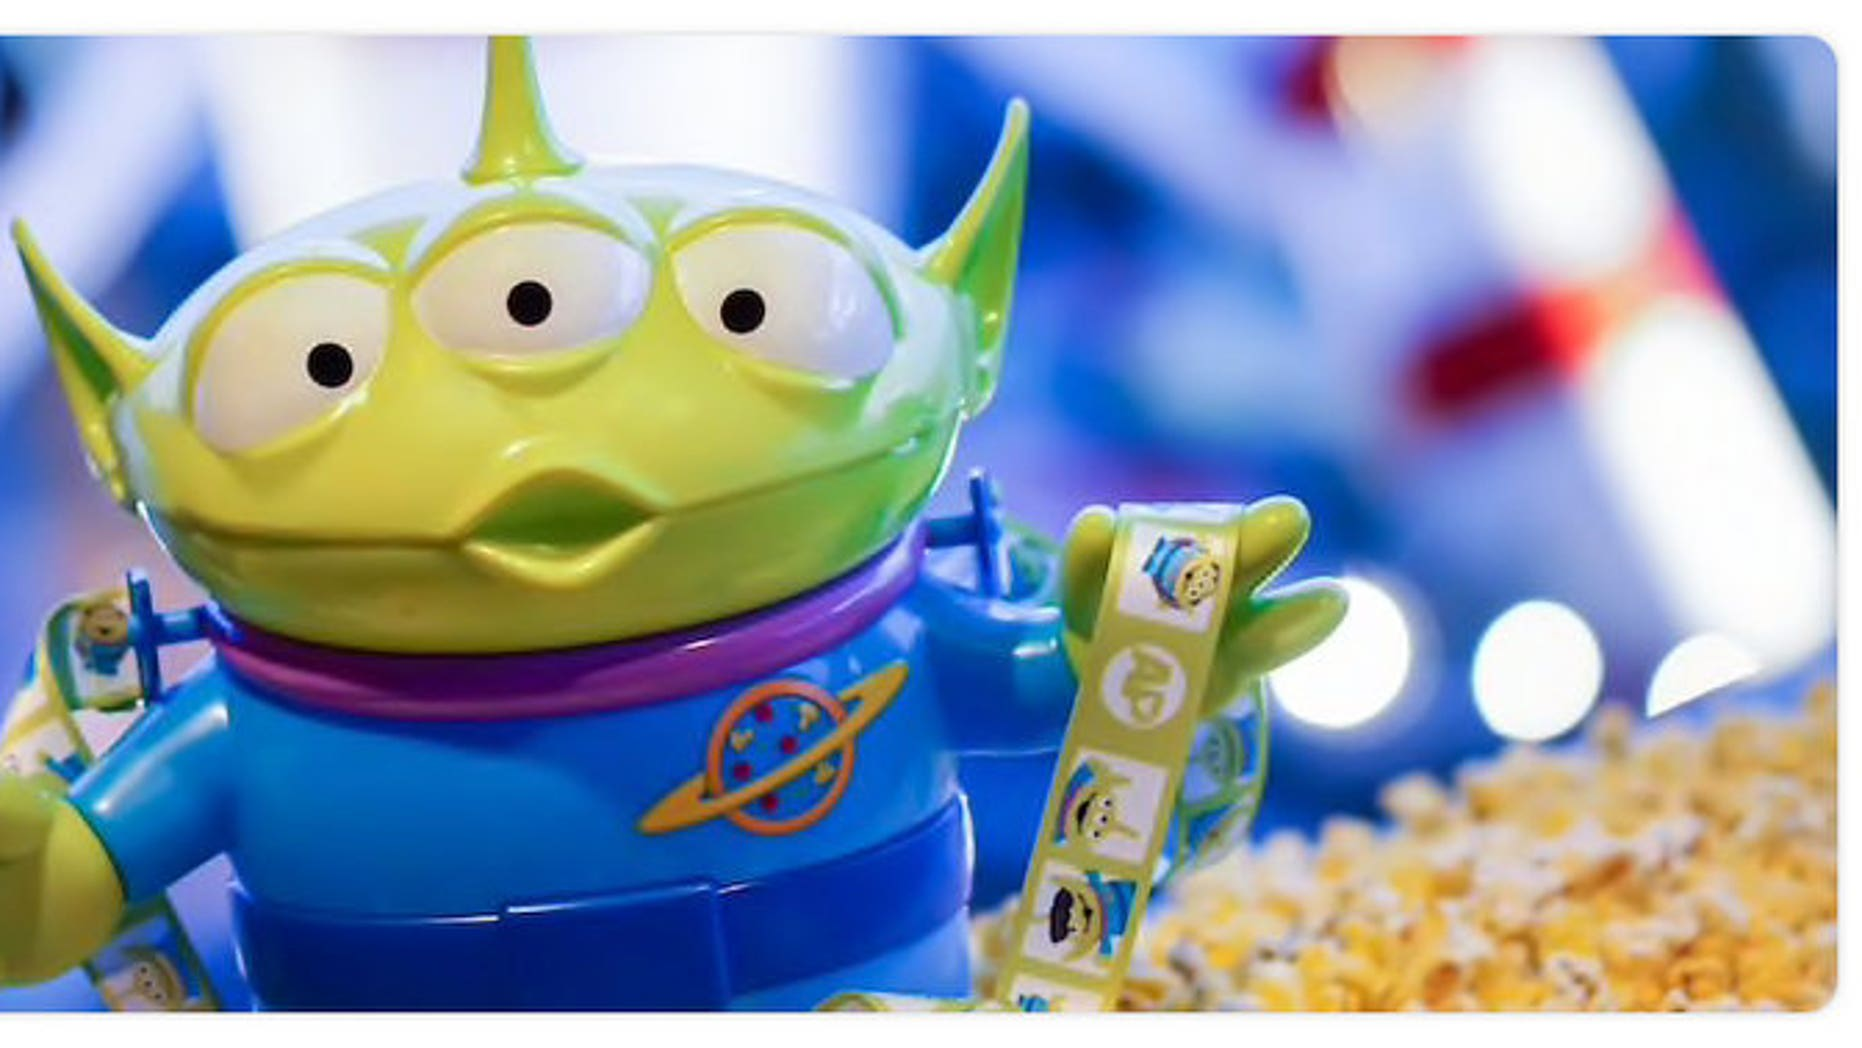 Disneyland has released a Pixar-themed popcorn bucket for a limited time.